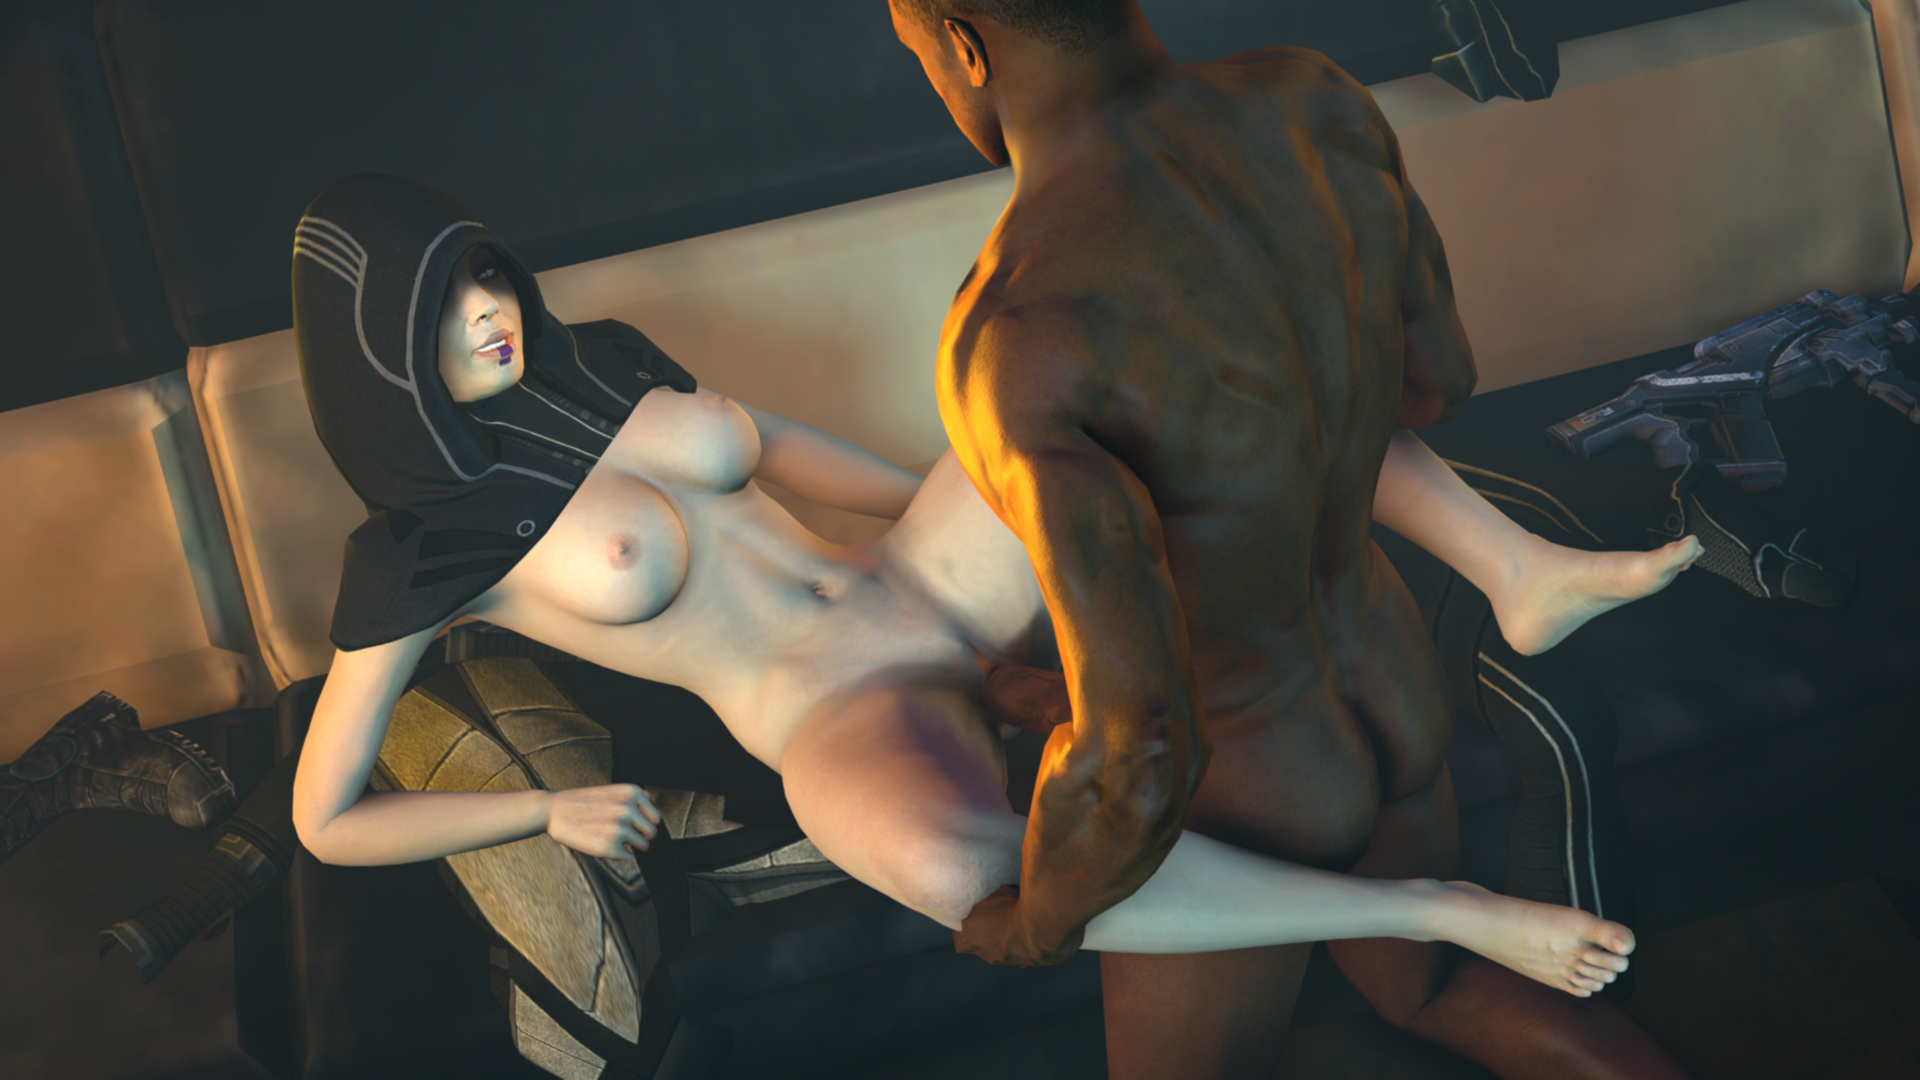 Mass effect nude game hentia pic